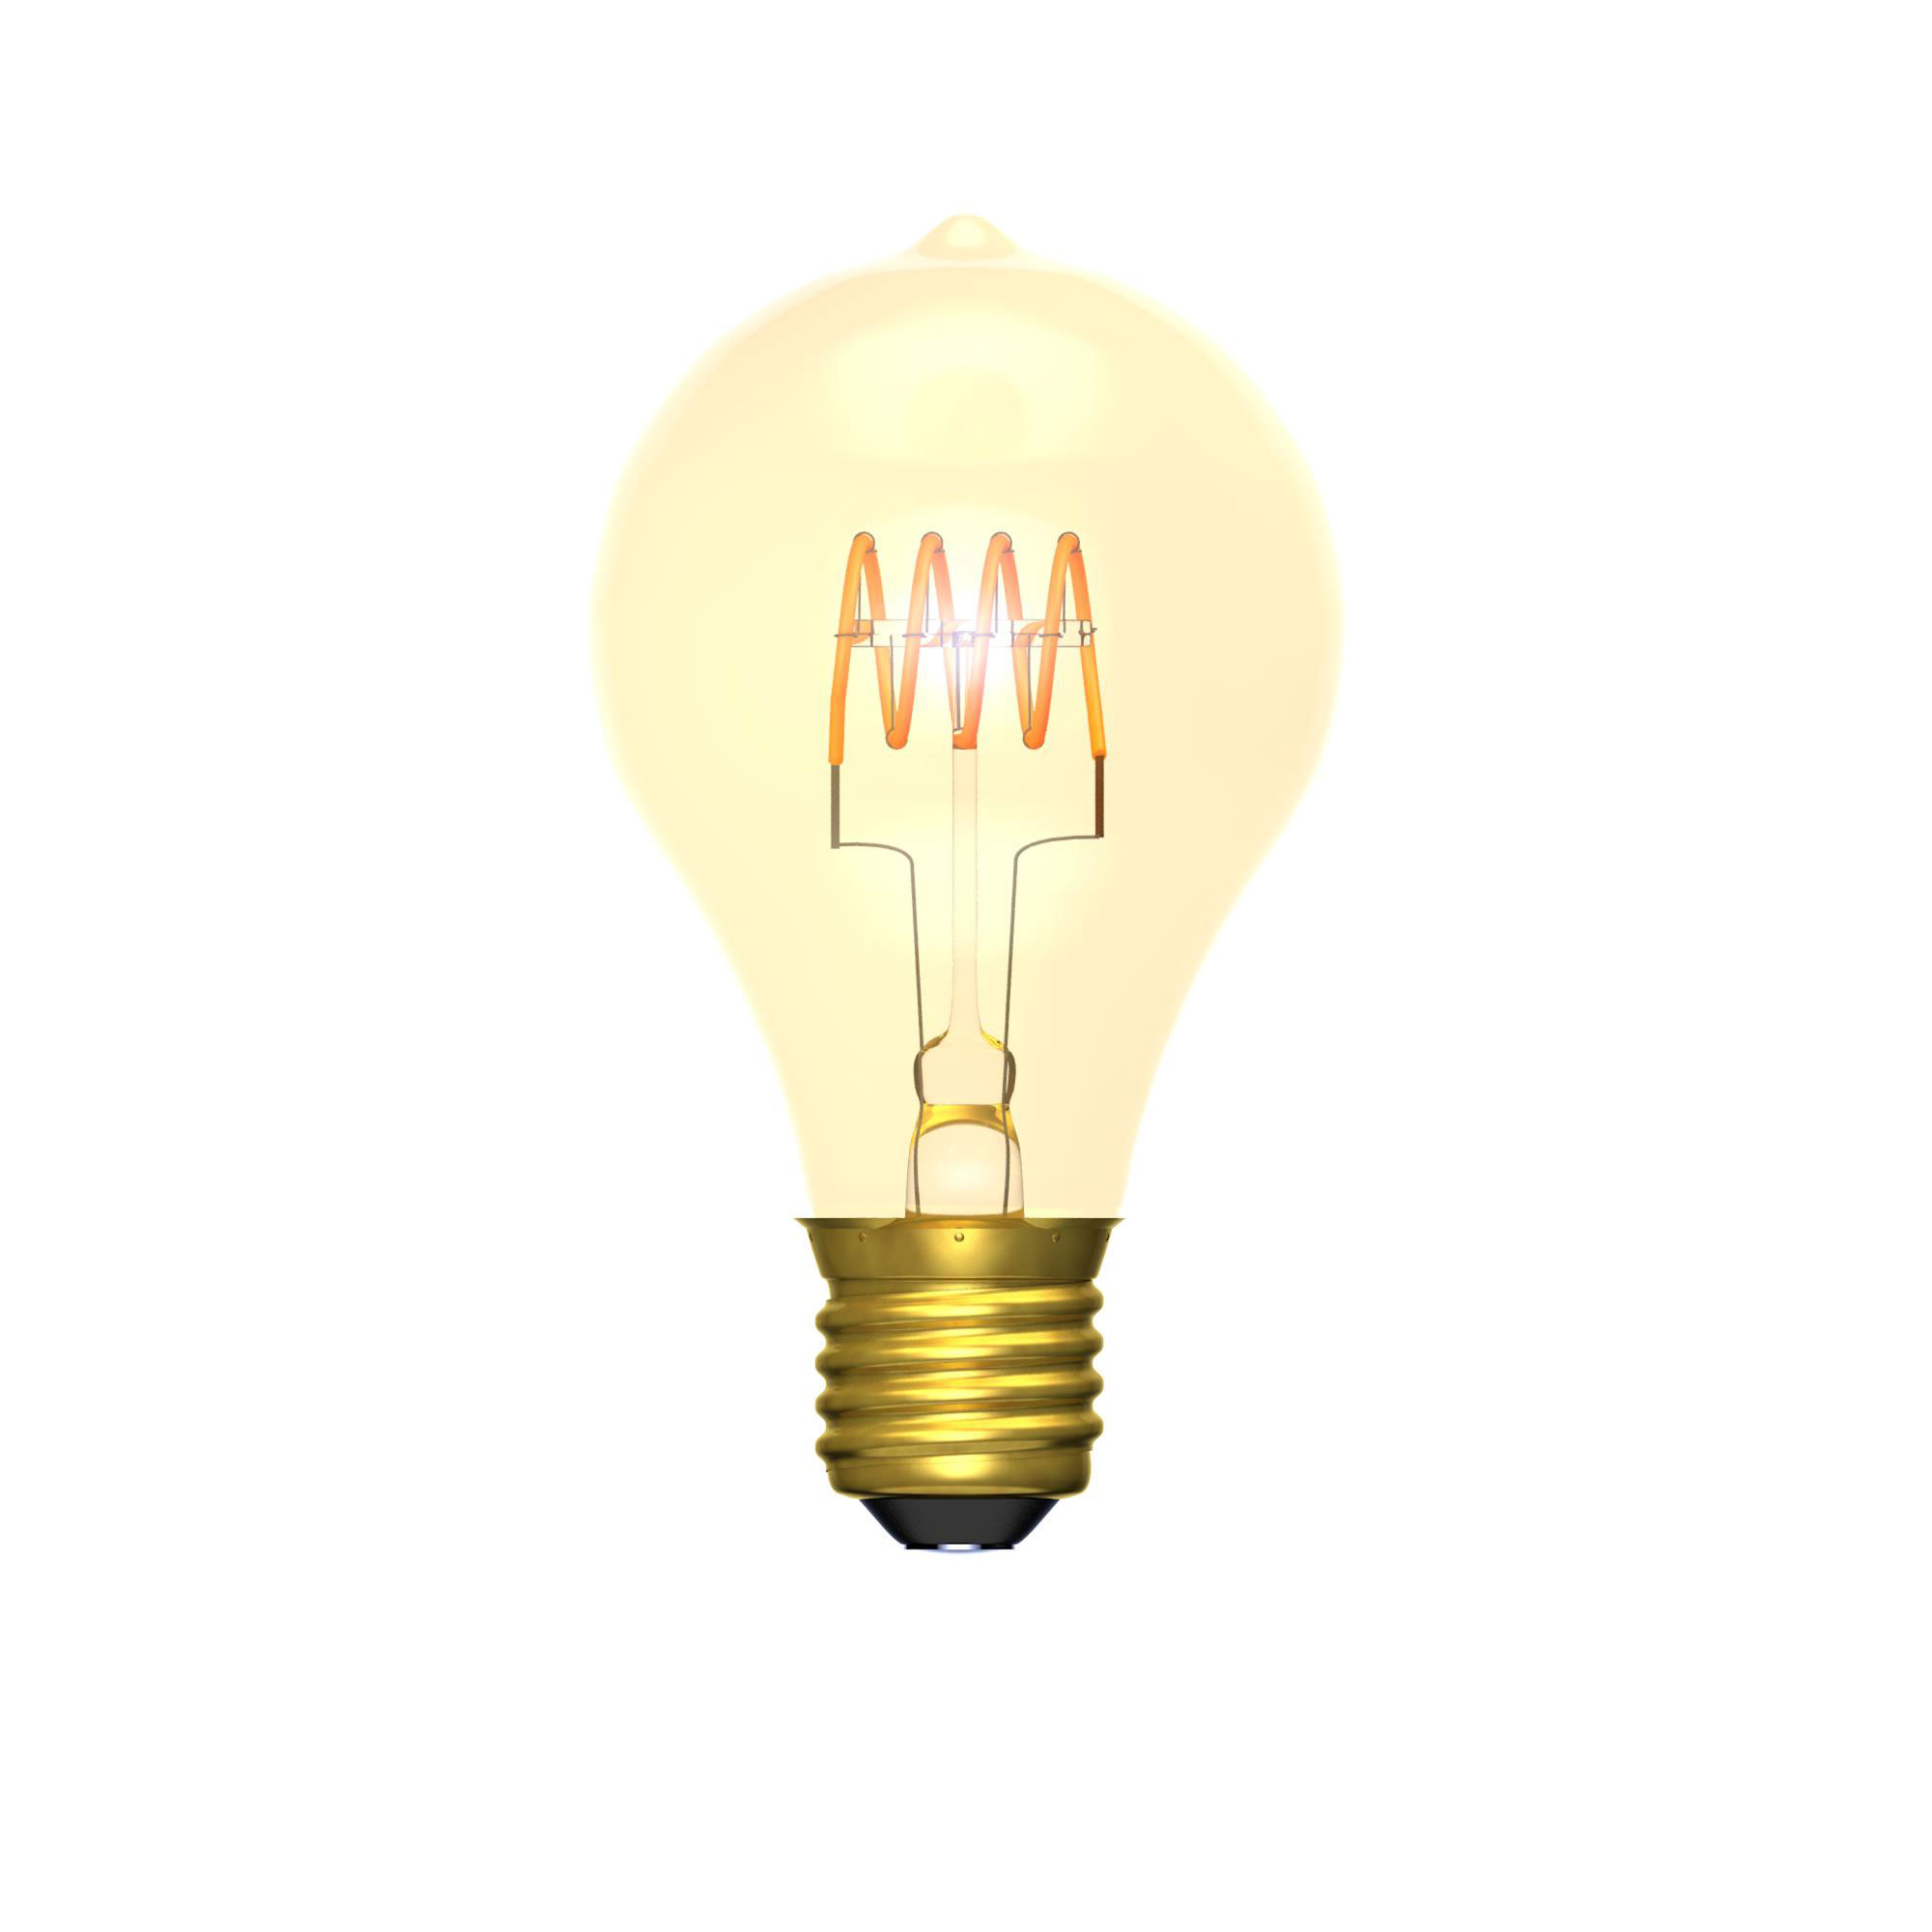 BL LED GLS ES 4W=25W GOLD D 15K SC DIMMABLE SOFT COIL FILAMENT